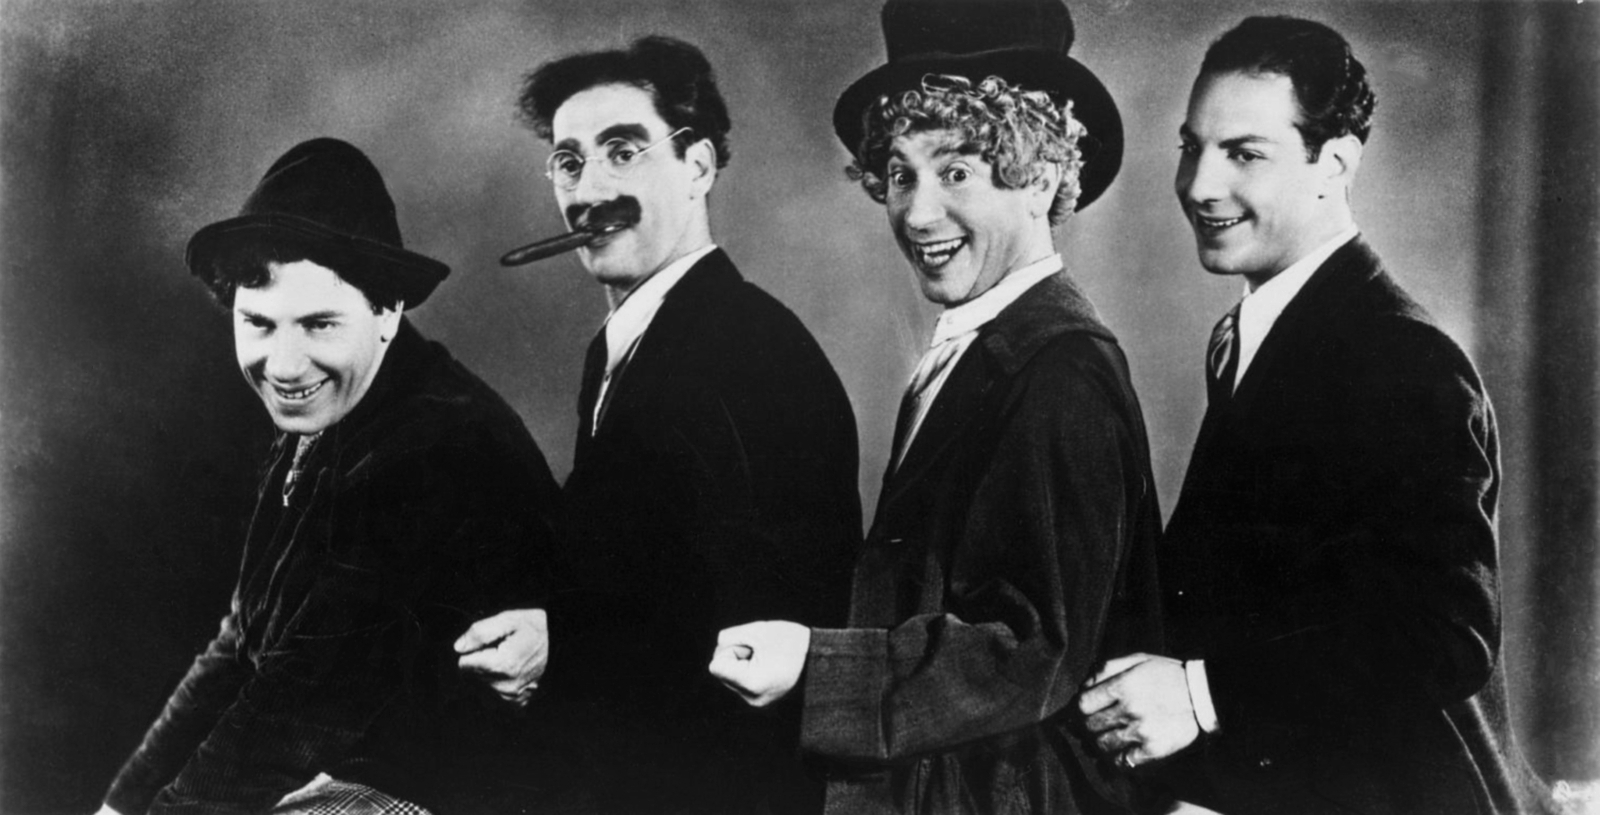 biographies of the famous marx brothers The biography of groucho marx, master of the wise-crack, and with his brothers  the most famous of the marx brothers died on august 19, 1977 and was laid to.